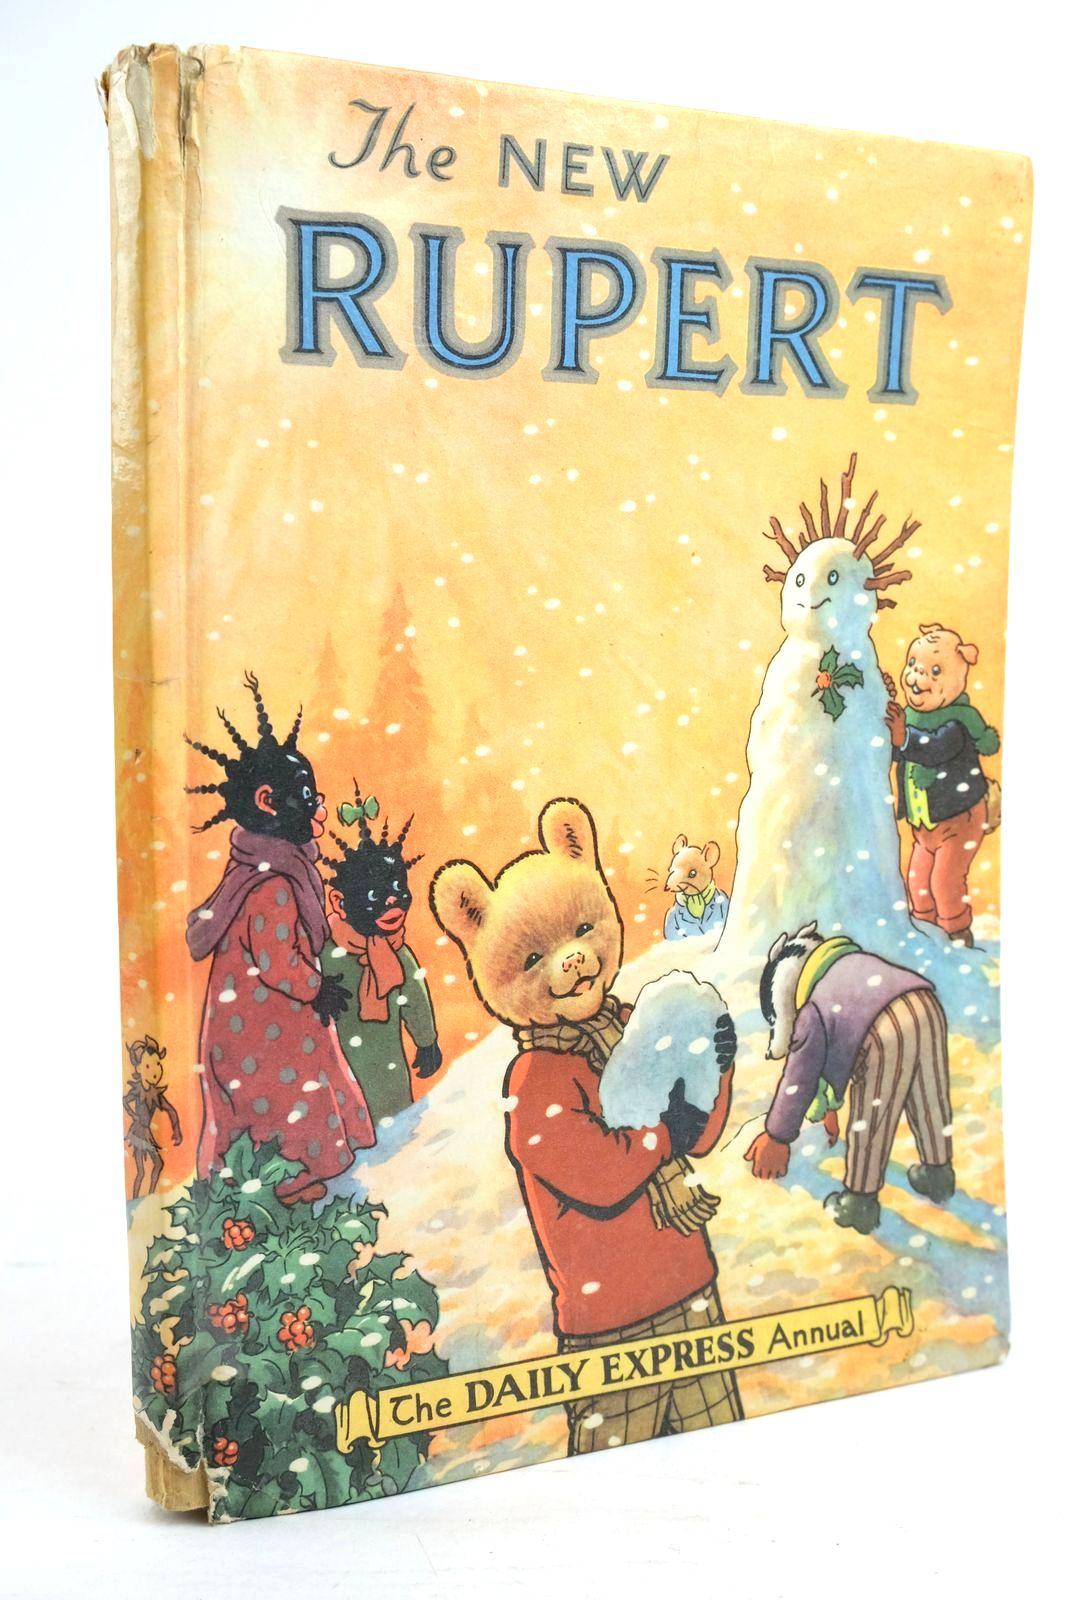 Photo of RUPERT ANNUAL 1954 - THE NEW RUPERT written by Bestall, Alfred illustrated by Bestall, Alfred published by Daily Express (STOCK CODE: 1320114)  for sale by Stella & Rose's Books